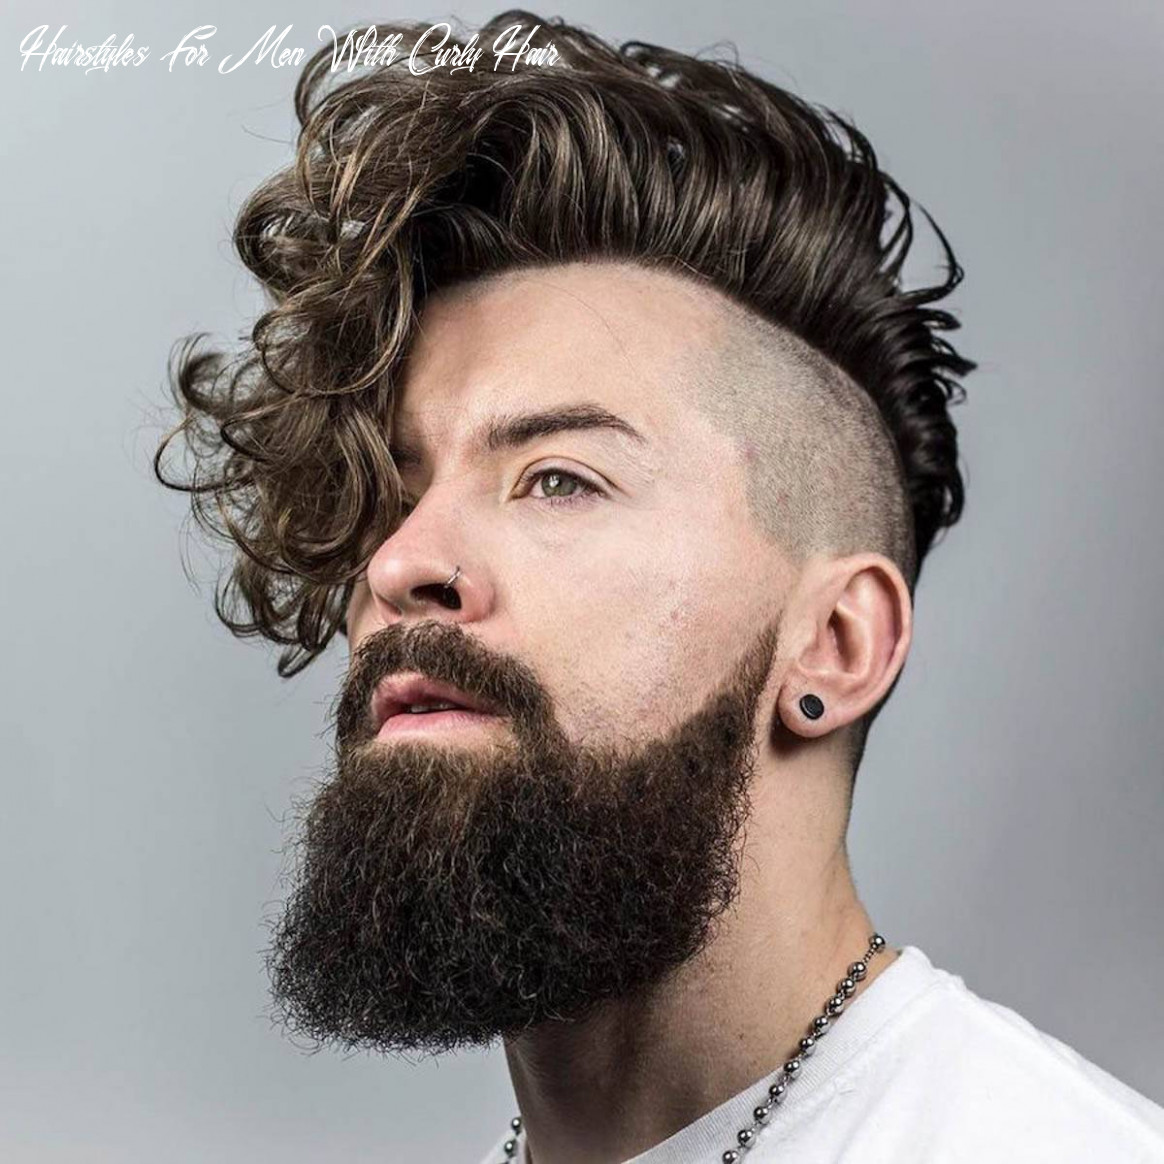 8 stylish curly hairstyle & haircuts for men [8 edition] hairstyles for men with curly hair